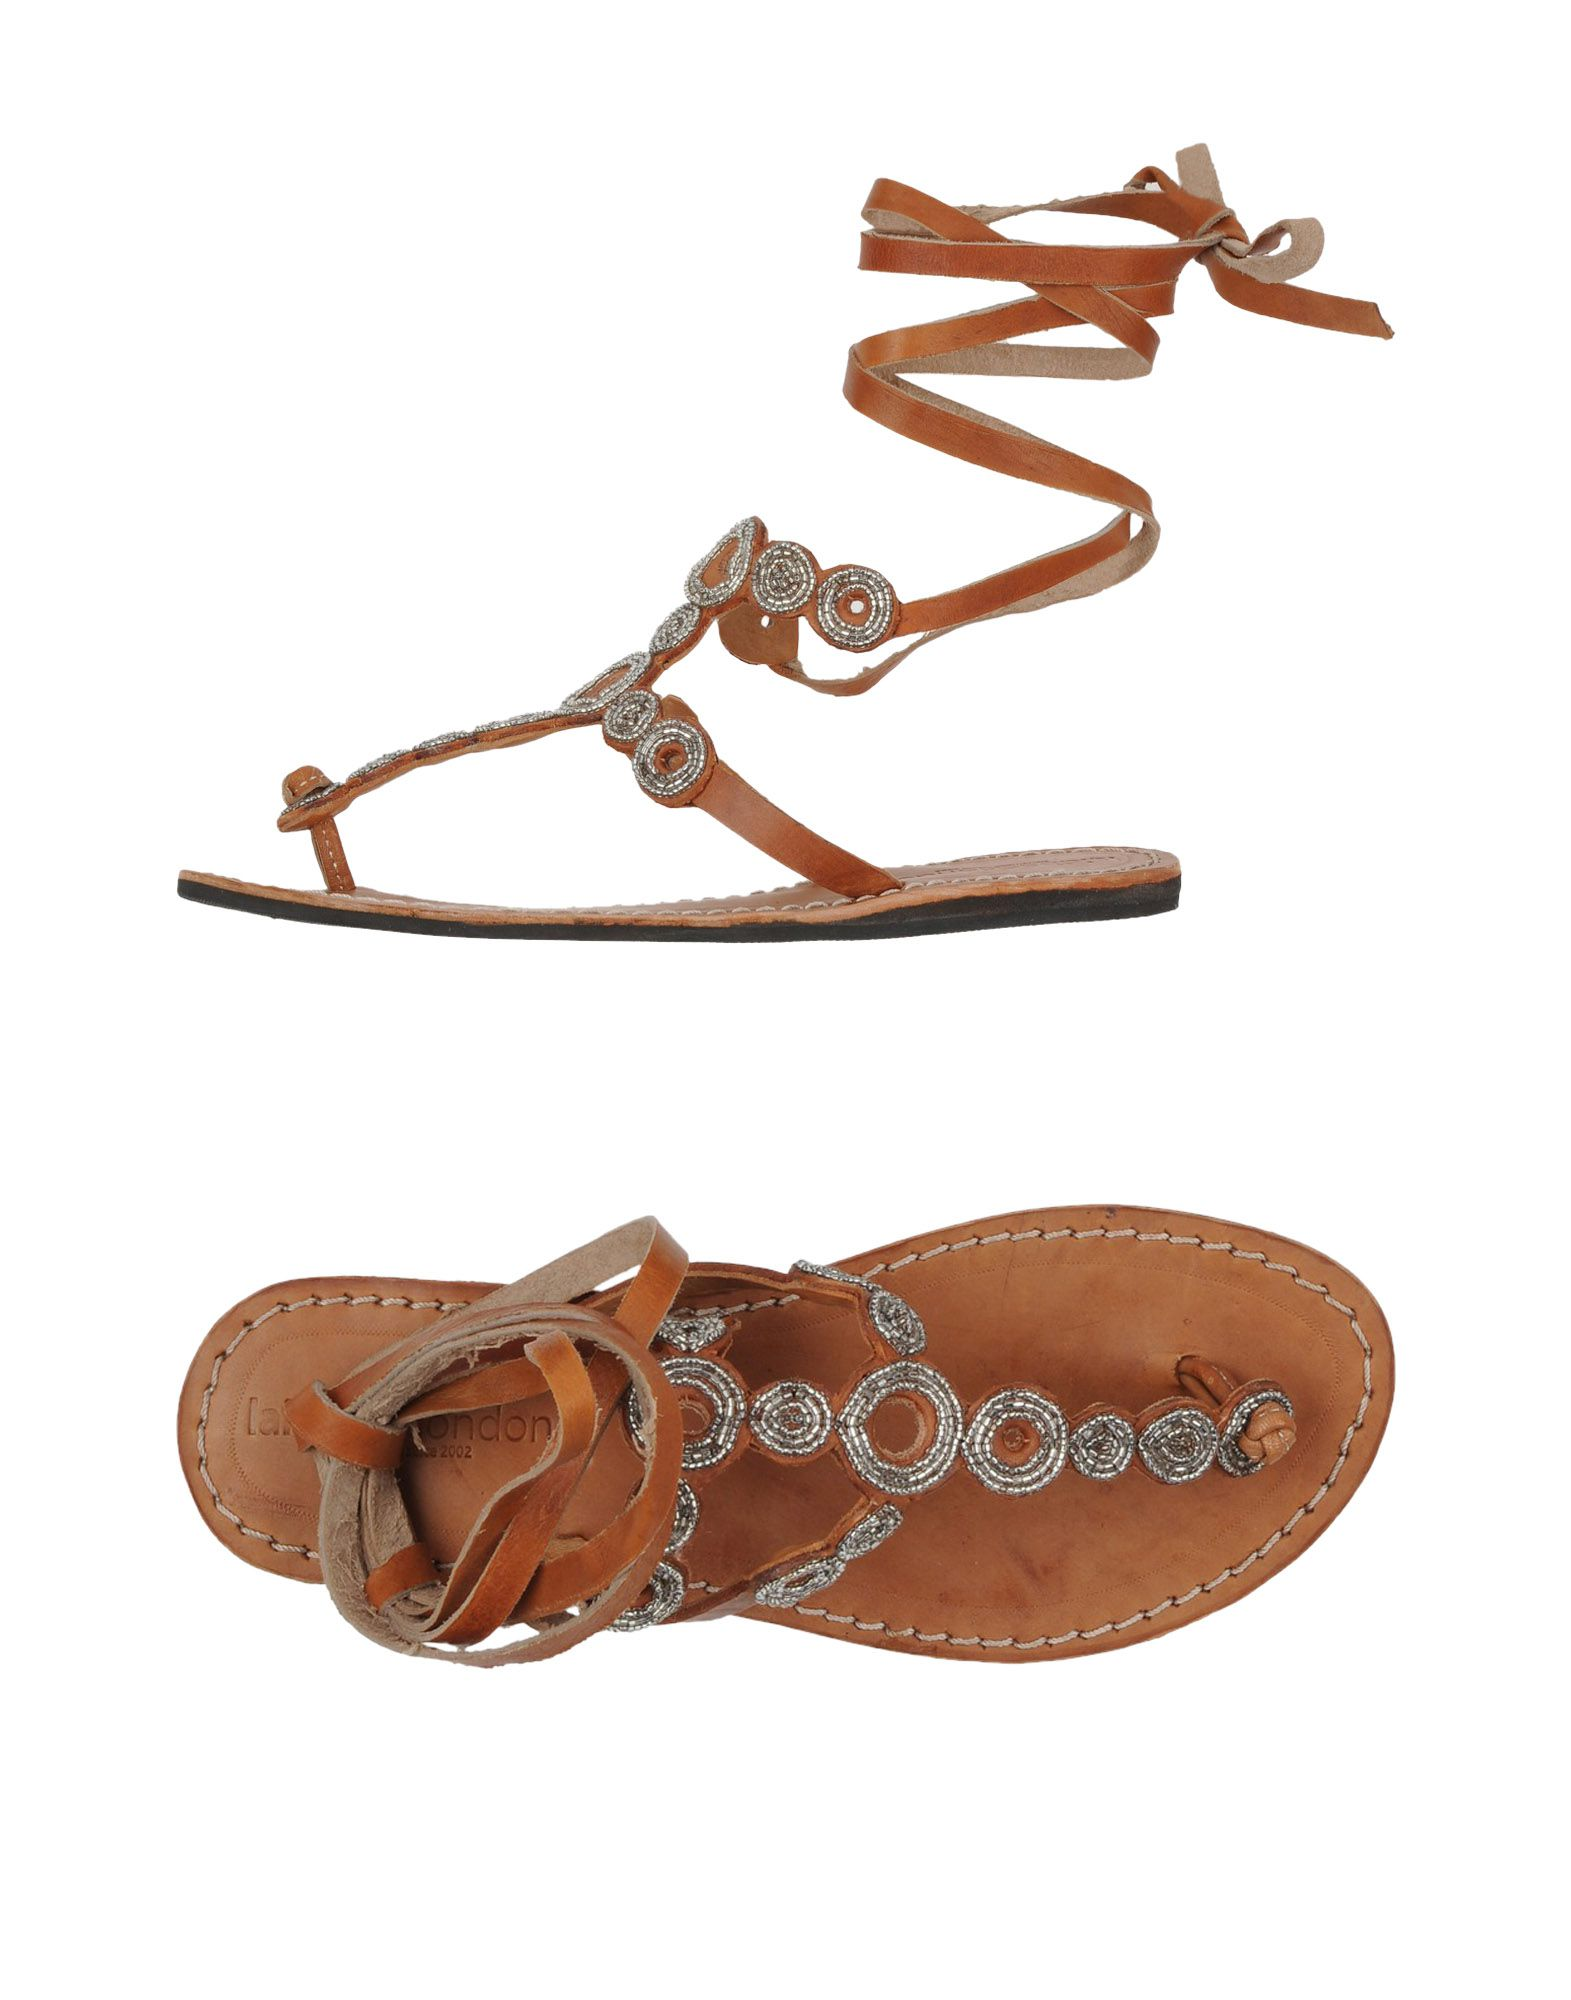 LAIDBACK LONDON Toe Strap Sandals in Brown